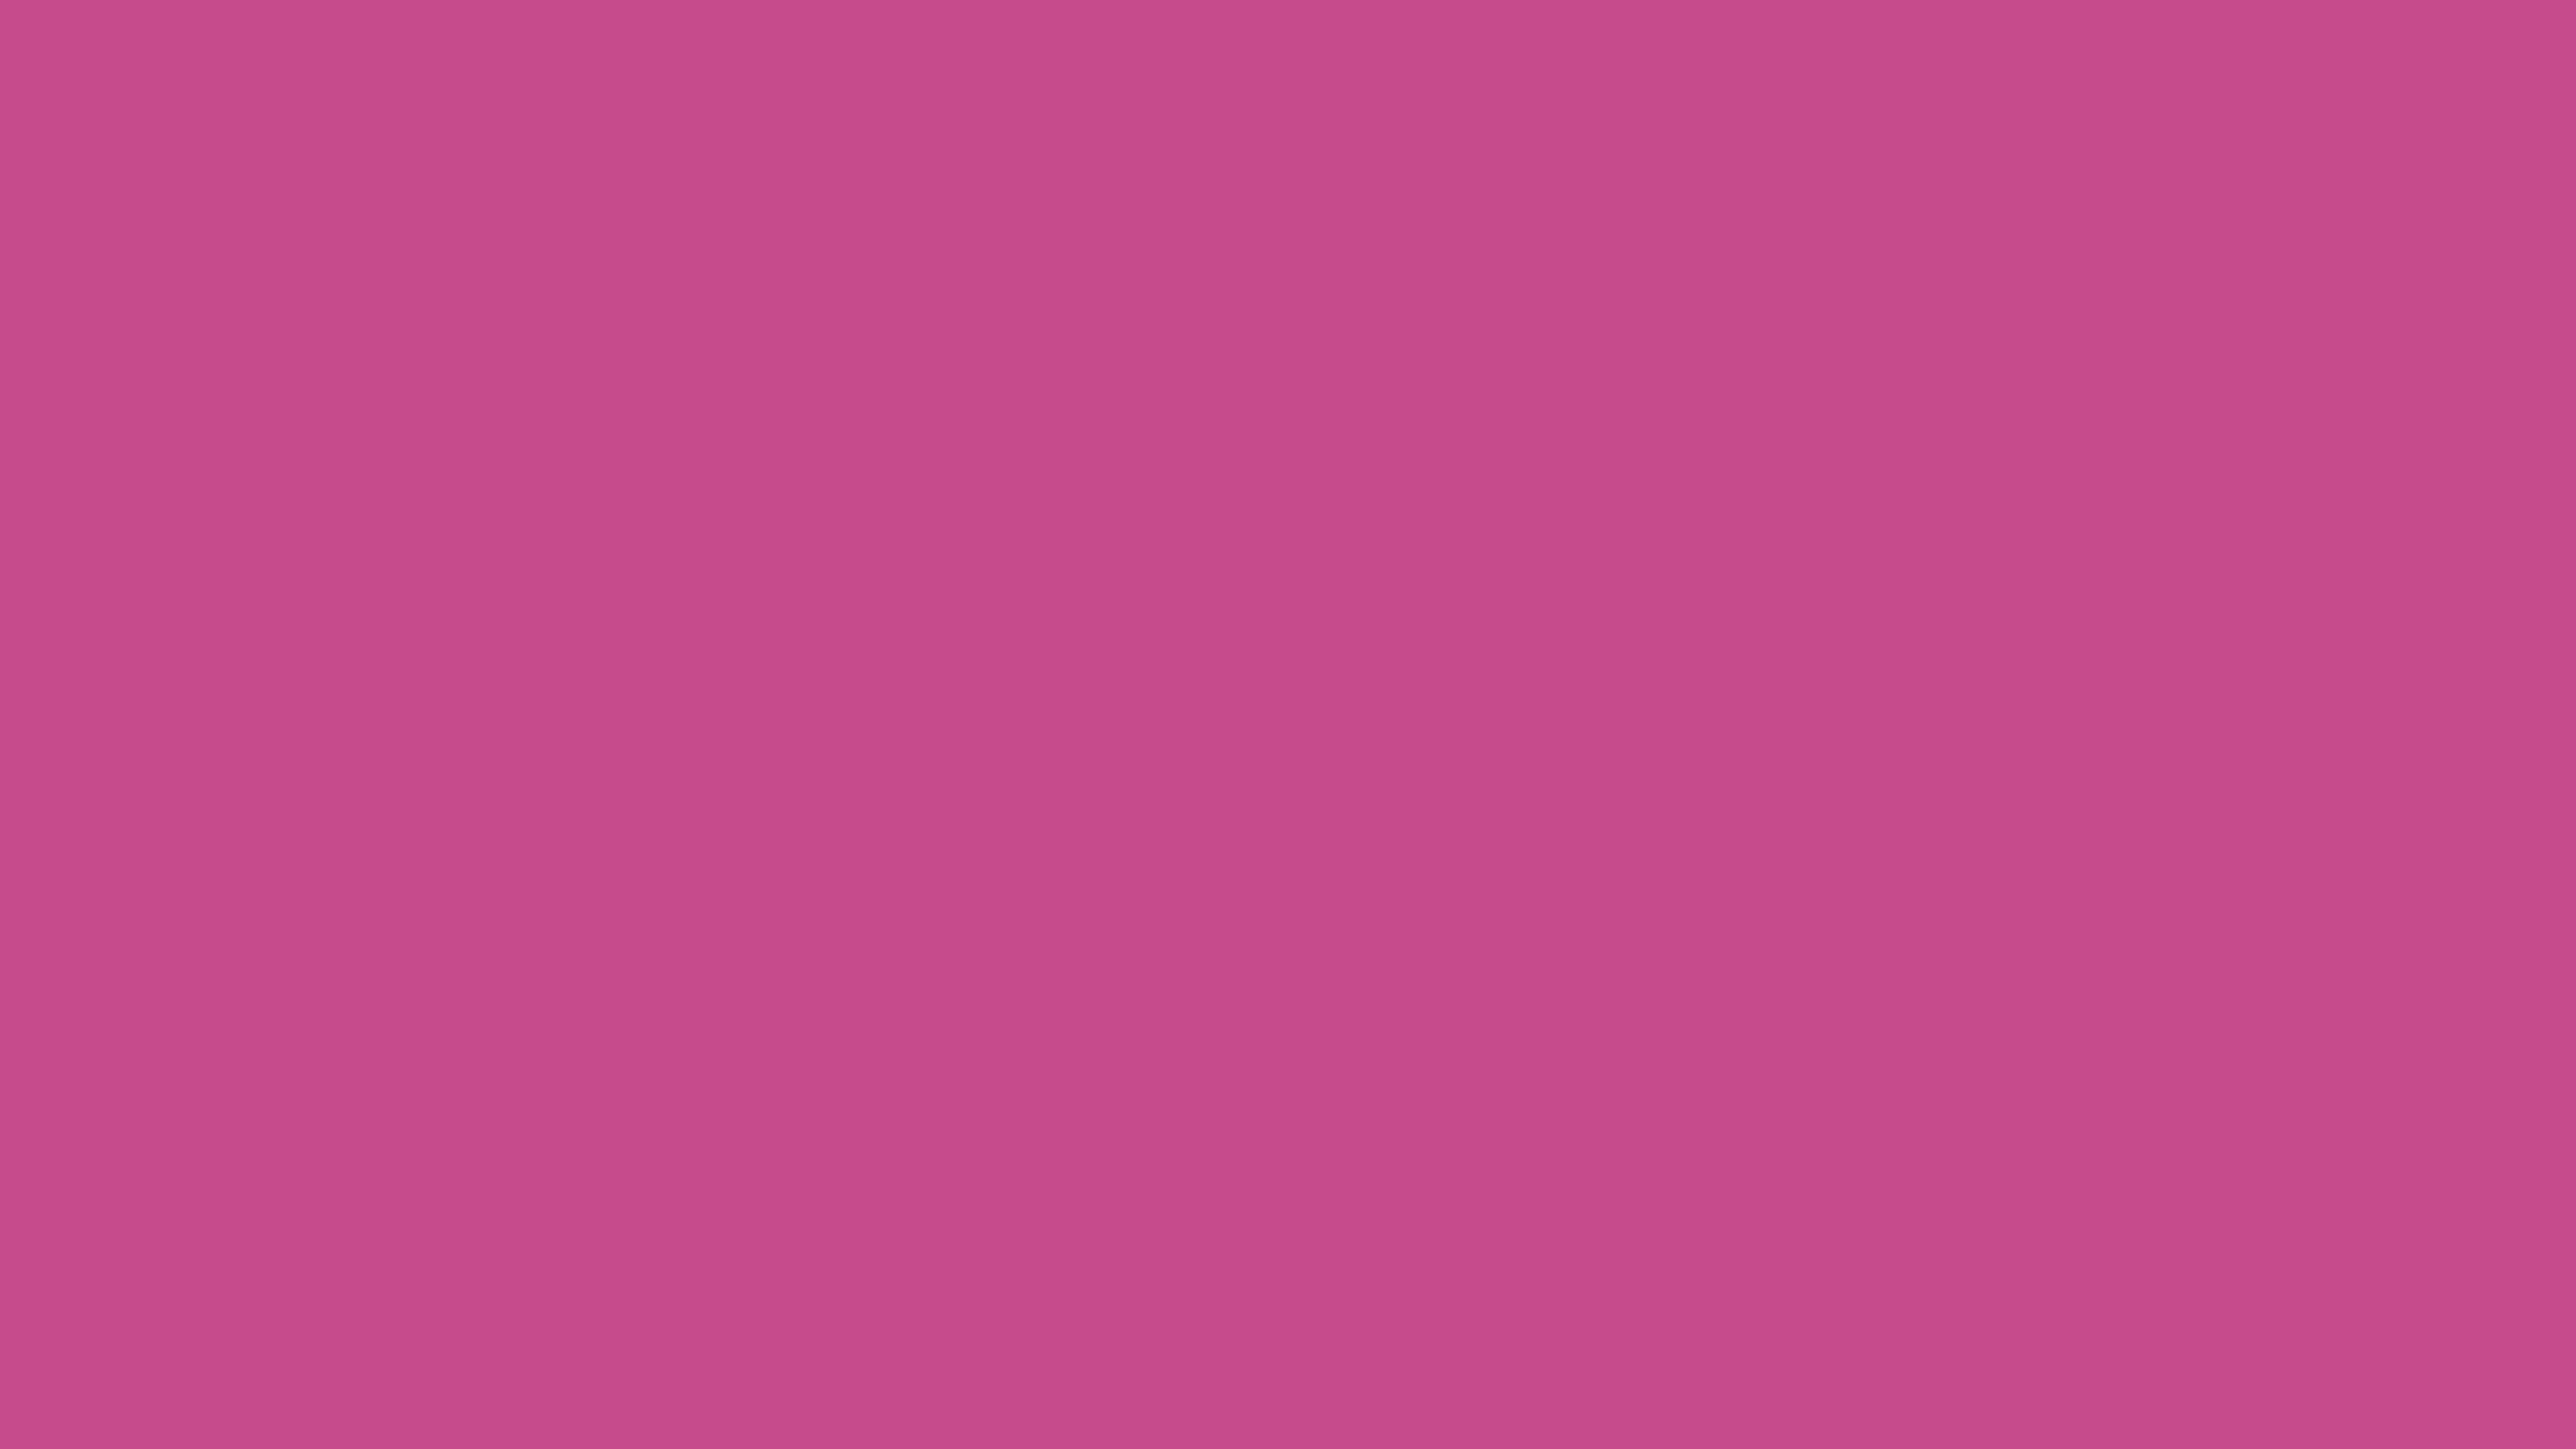 4096x2304 Mulberry Solid Color Background